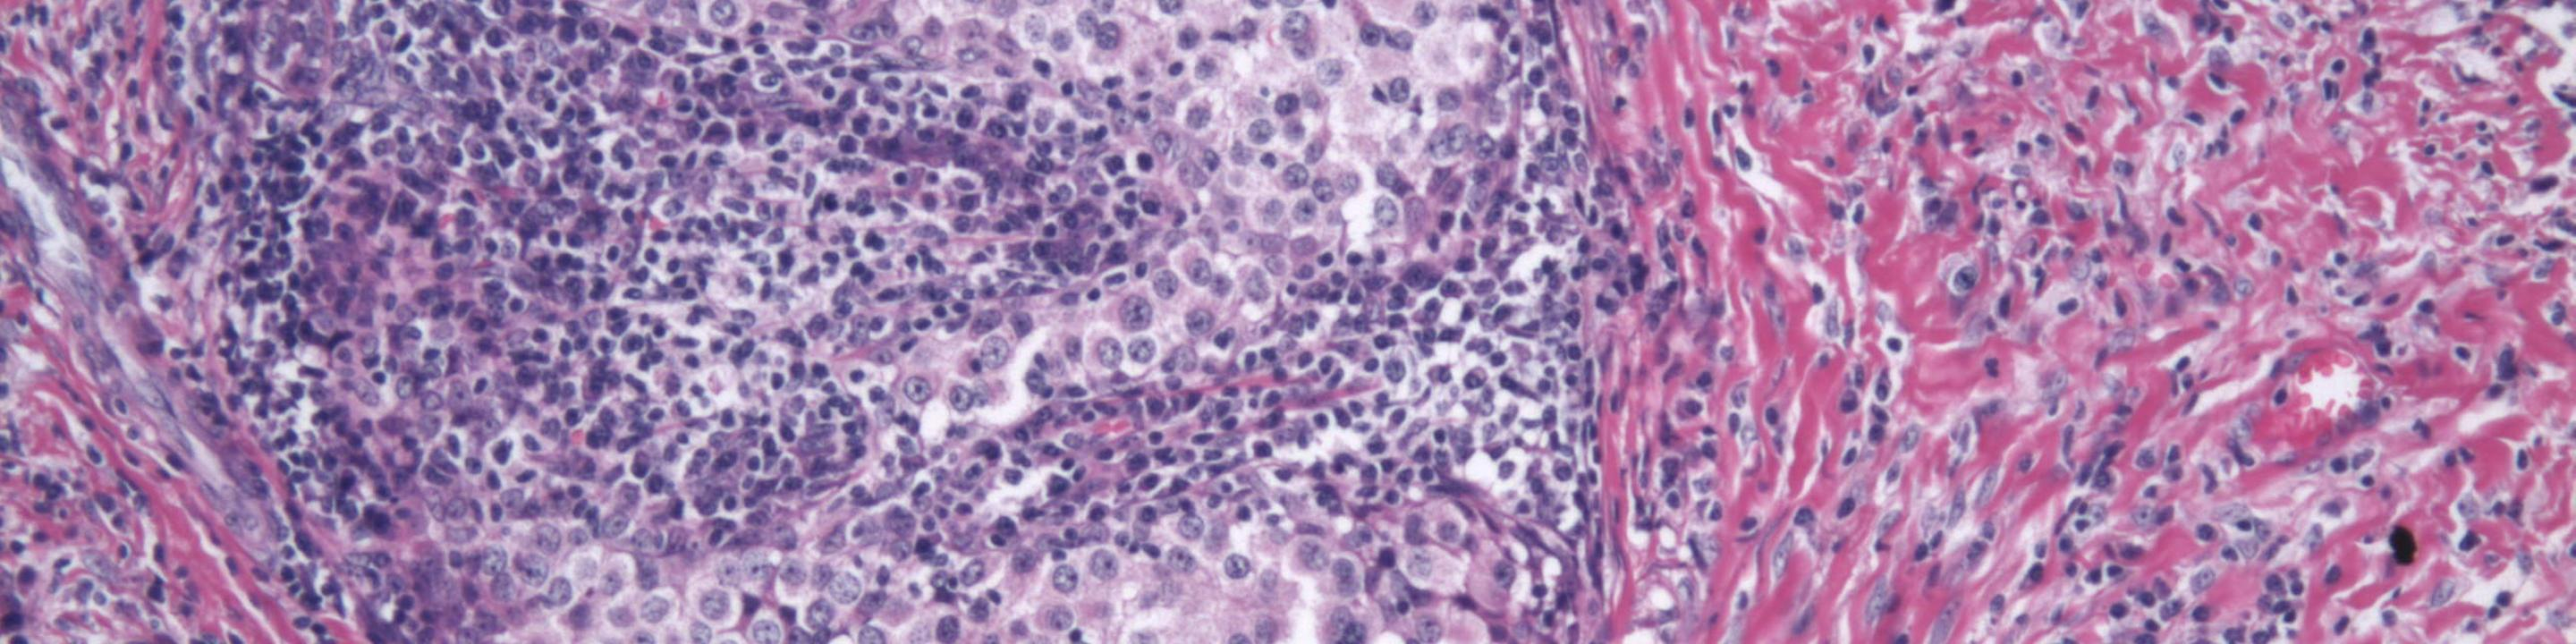 artwork cancer tissue staining